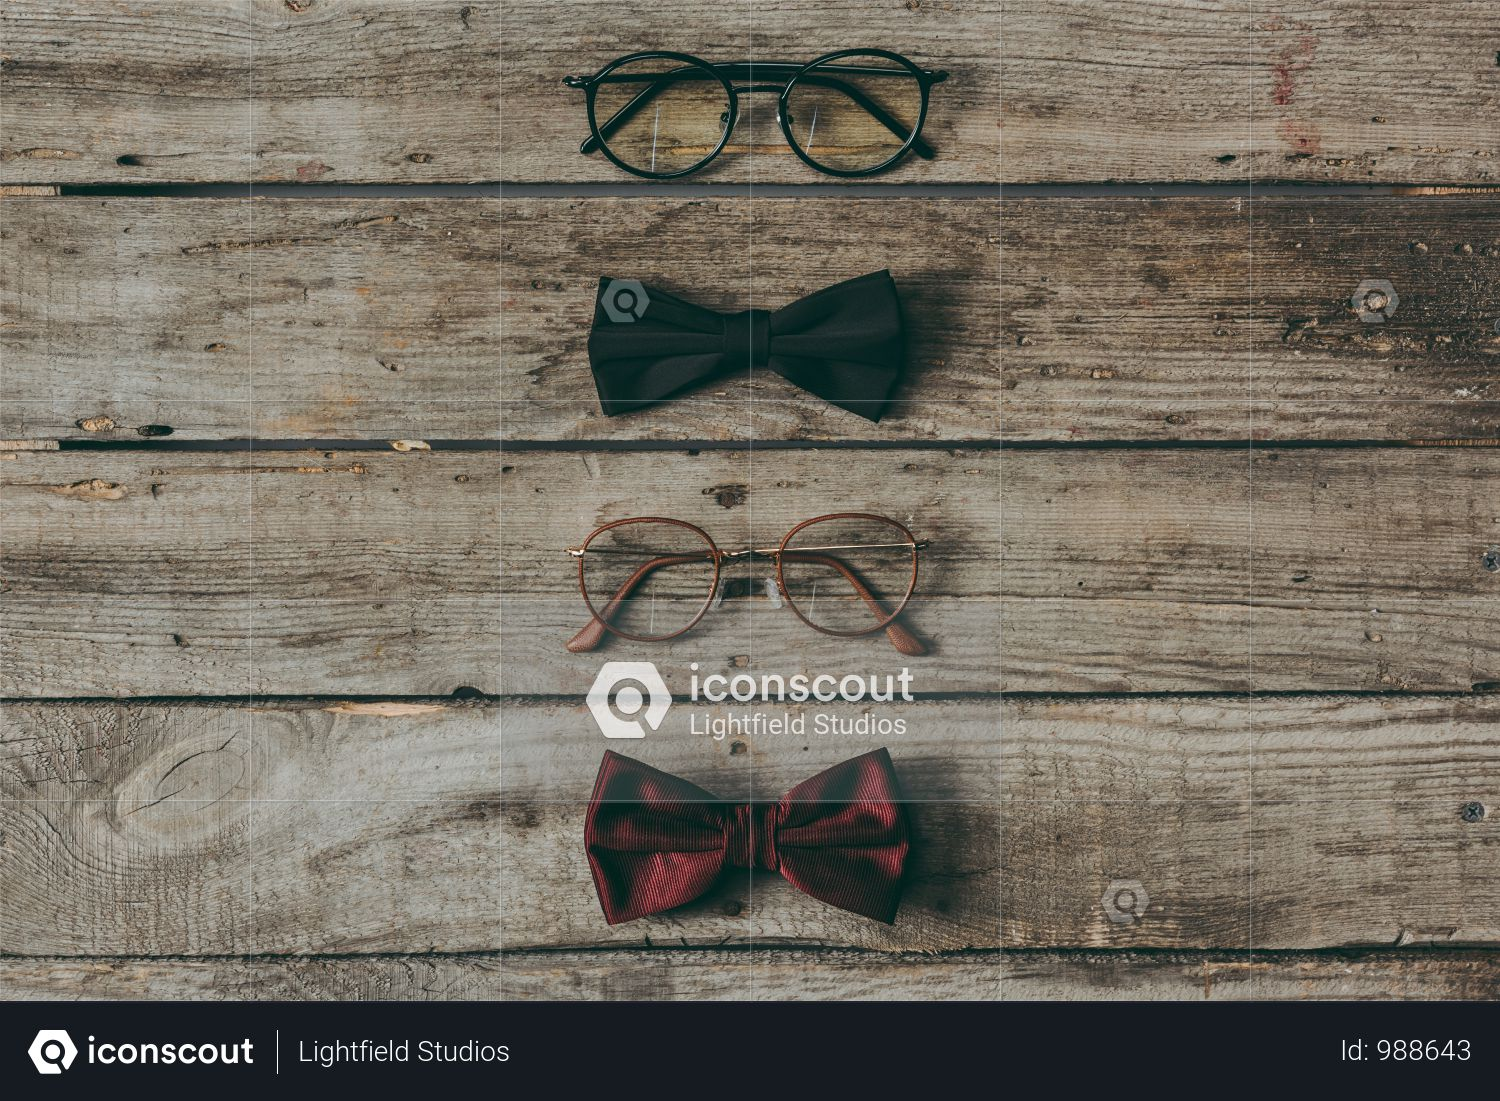 Row Of Stylish Eyeglasses And Bow Ties On Wooden Tabletop Photo